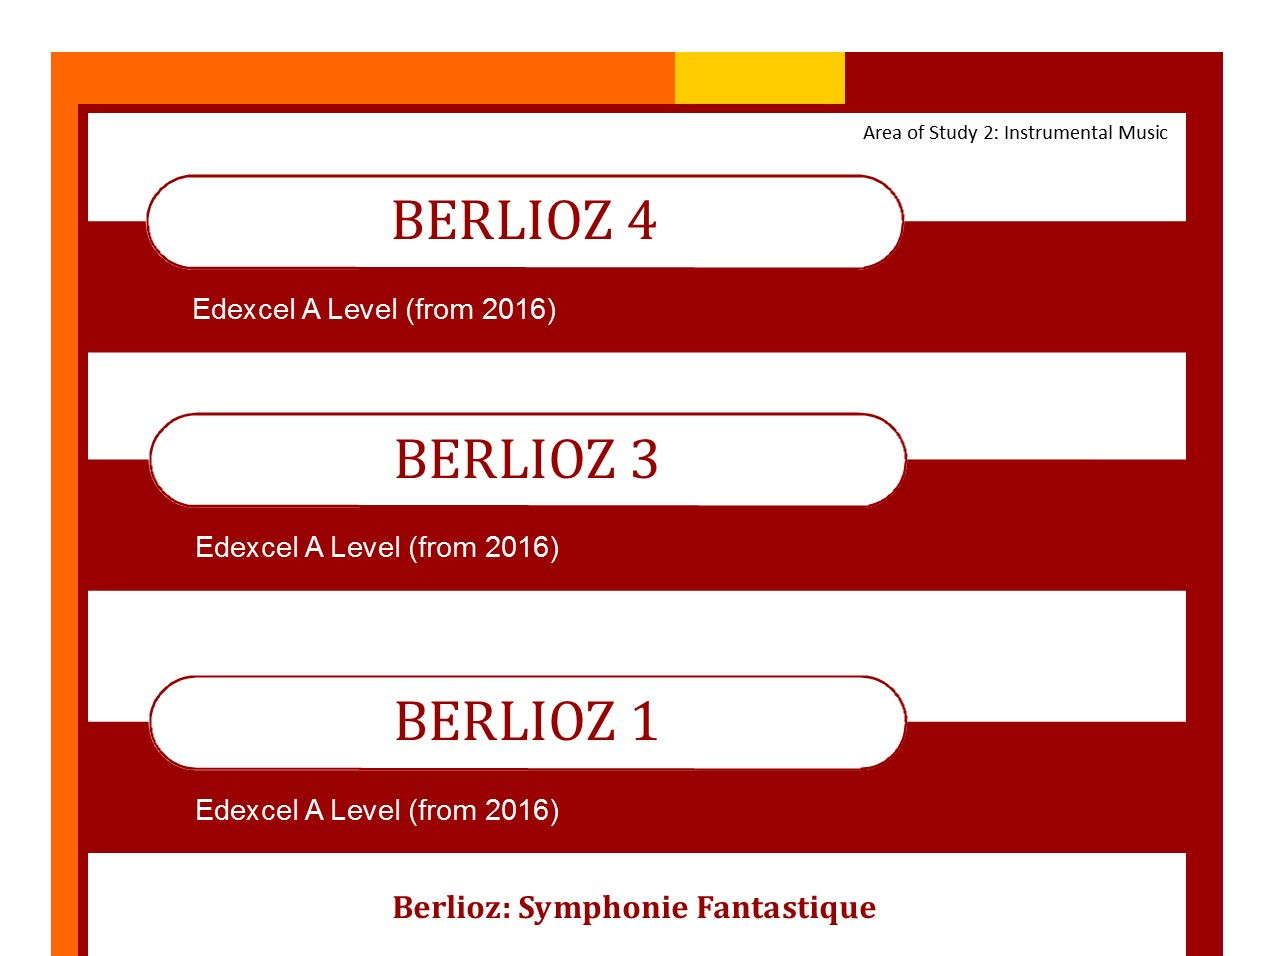 Edexcel Music A Level bundle of Berlioz 1,3 and 4.